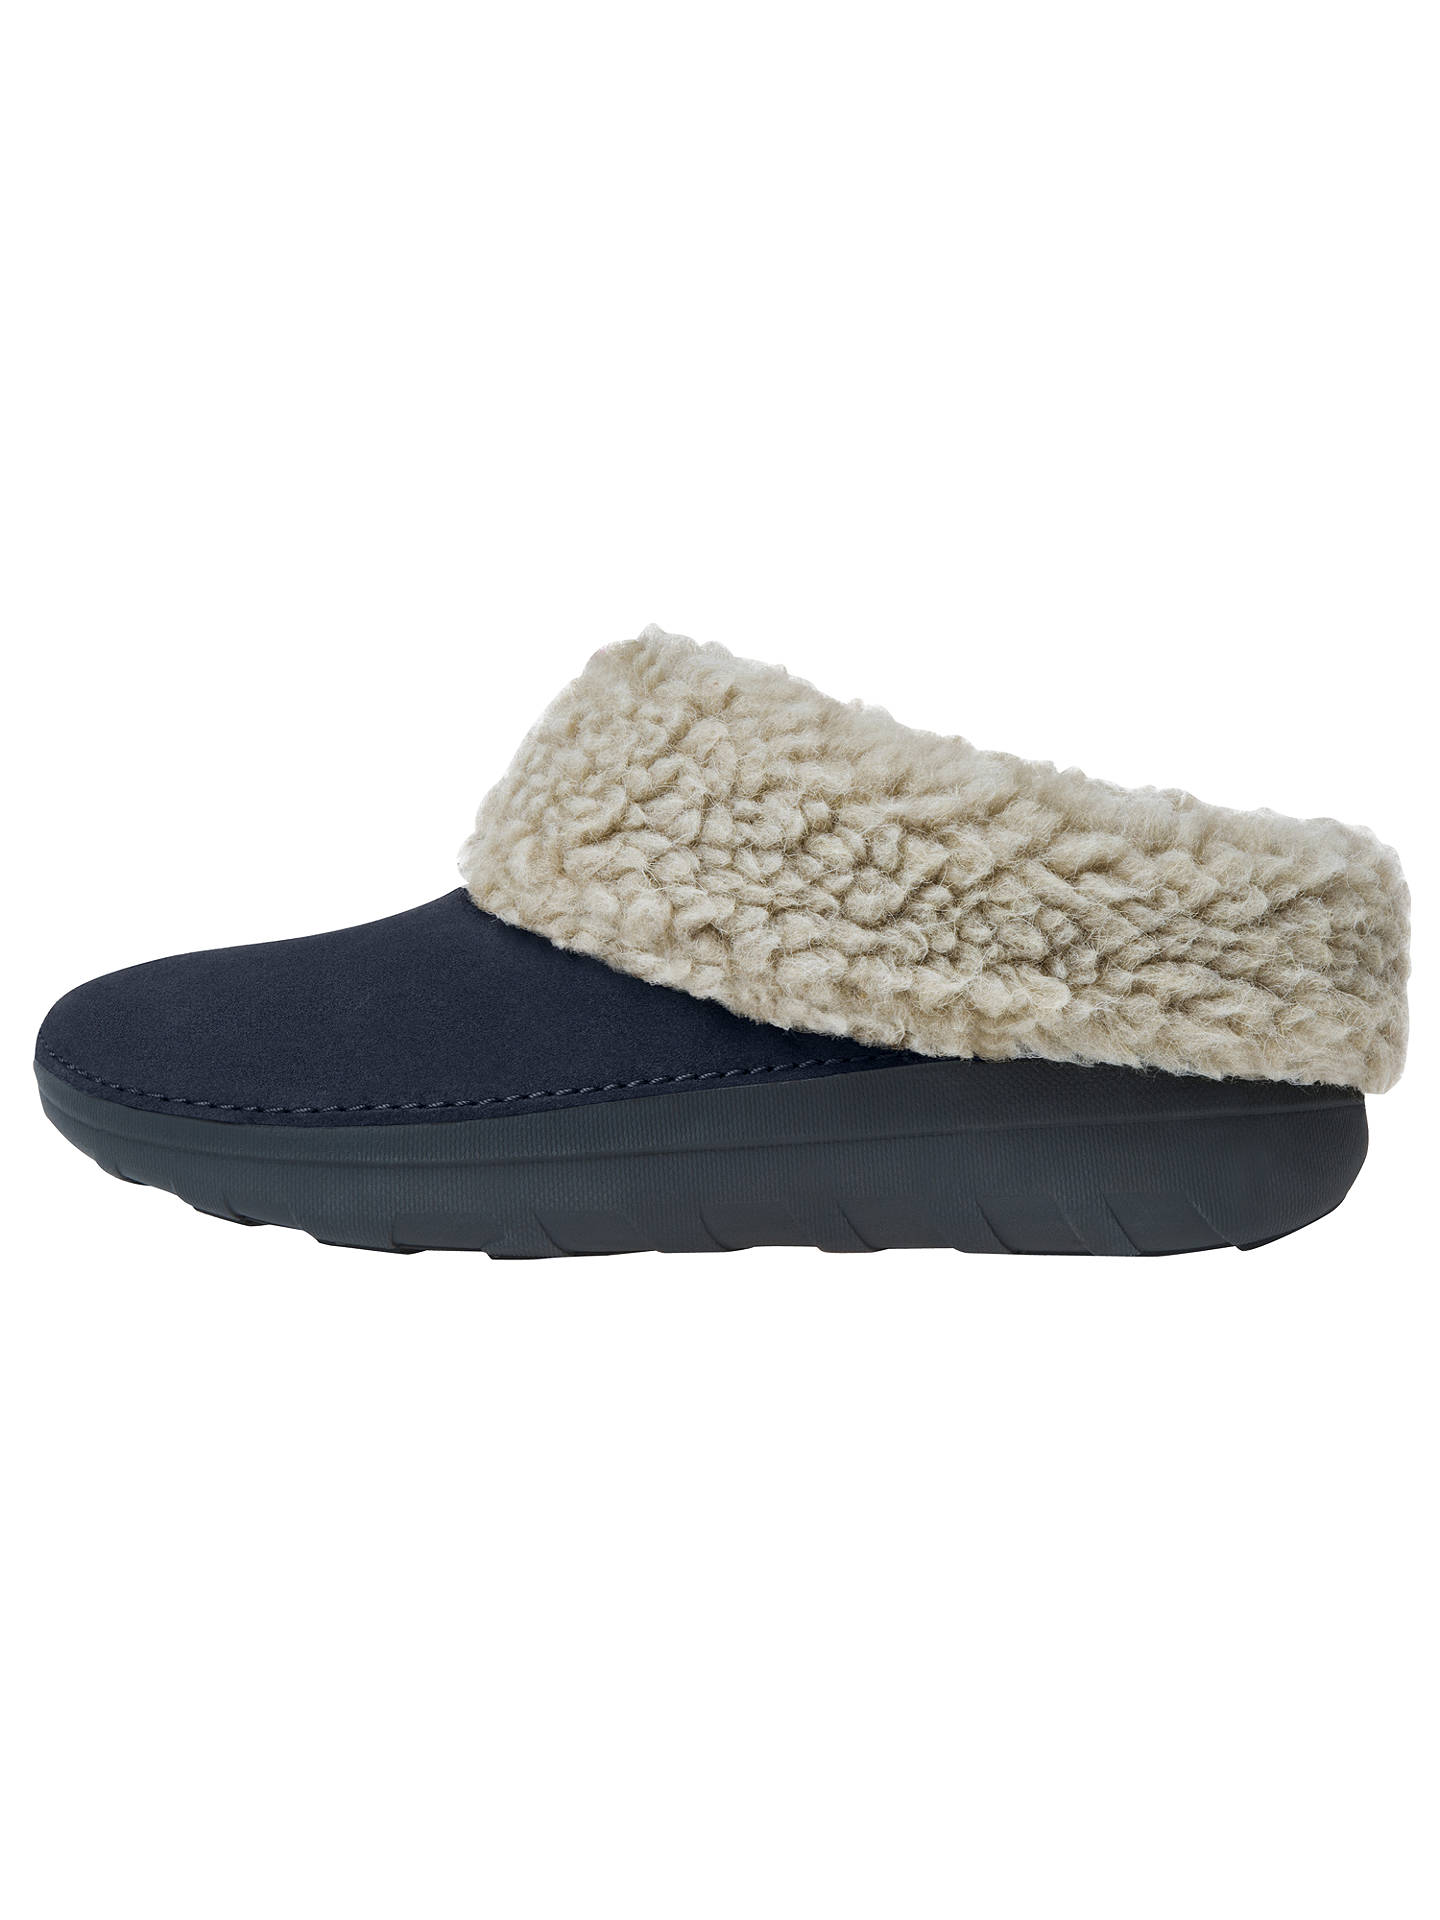 e0c675c72abcc Fitflop Loaff Snug Slippers at John Lewis   Partners